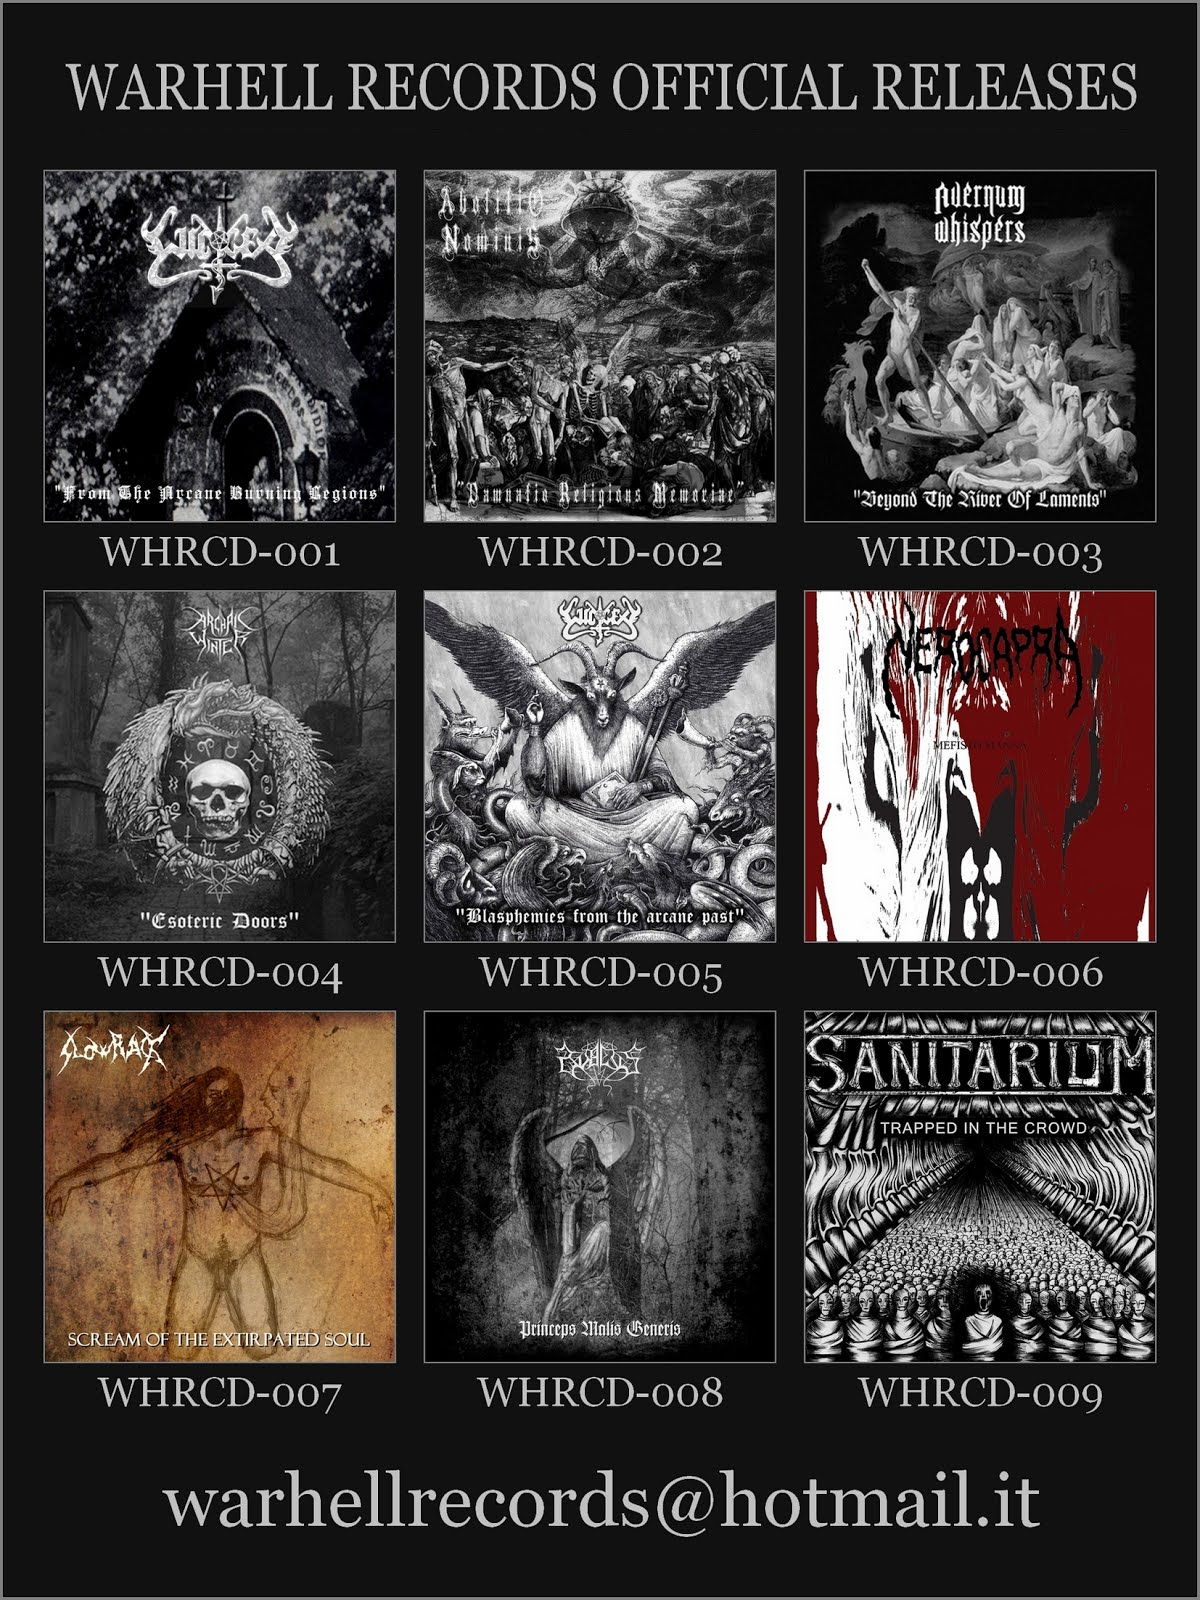 Warhell Records Official Releases